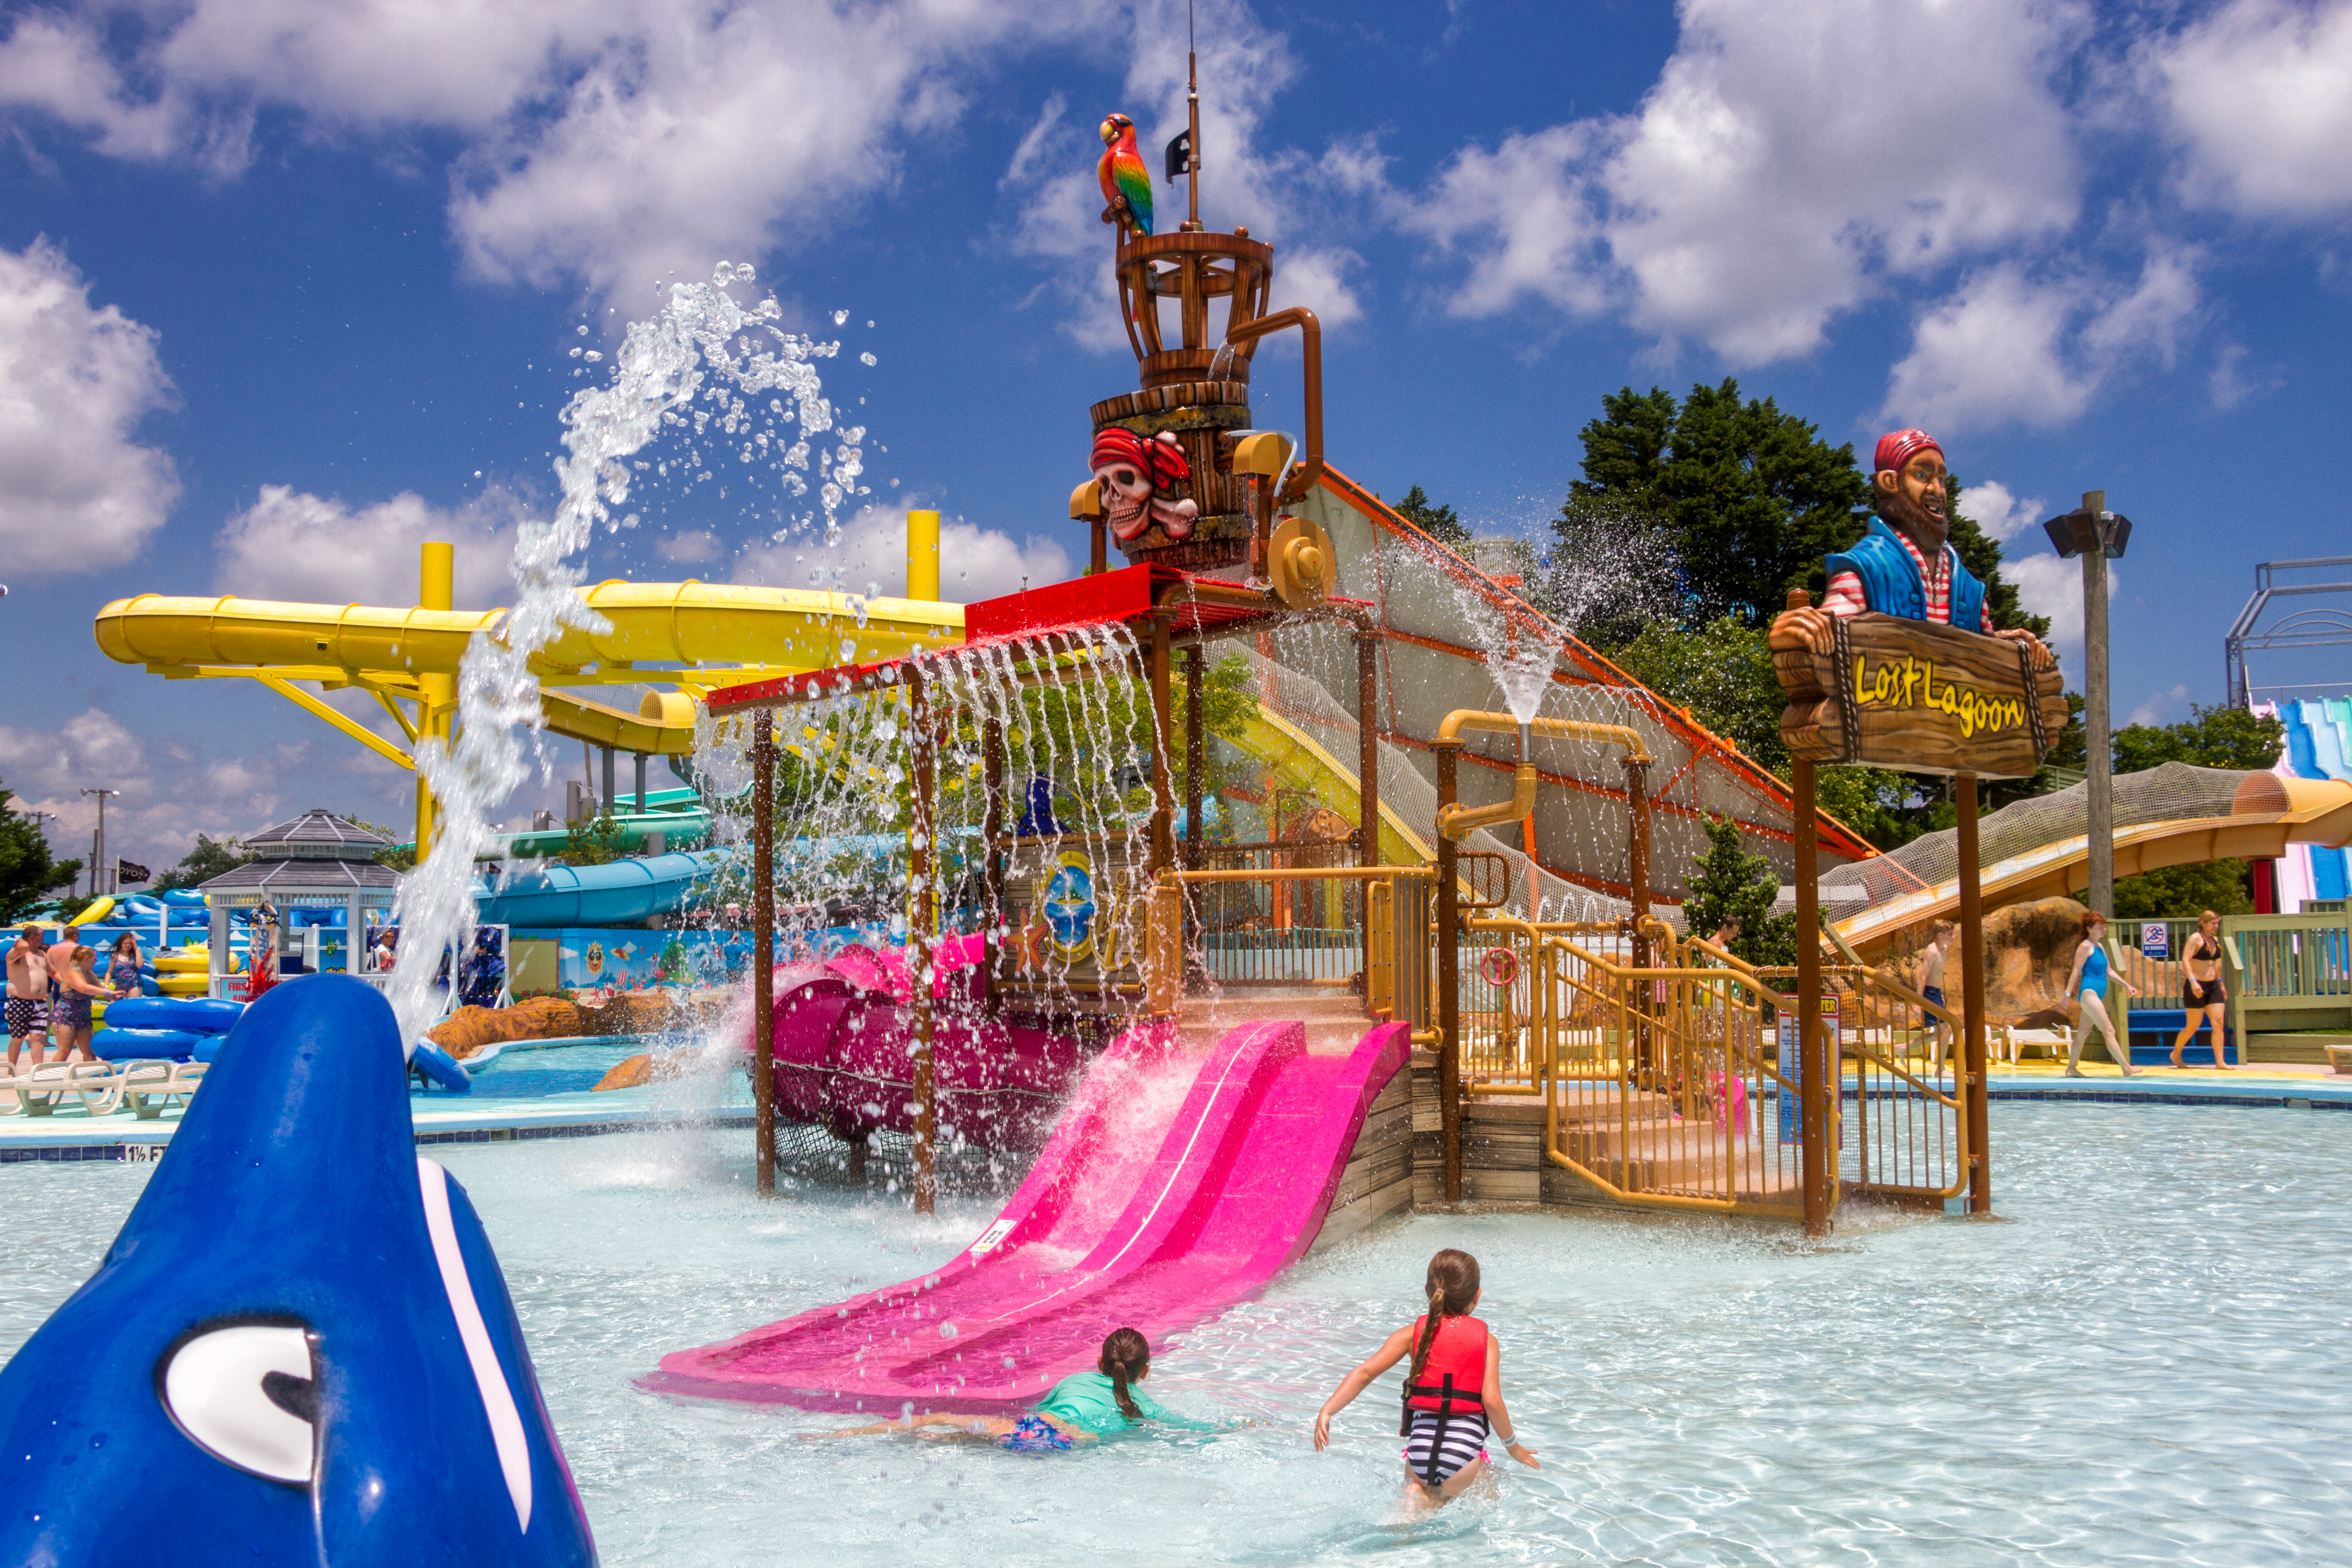 a childrens play area in a water park on a bright sunny day